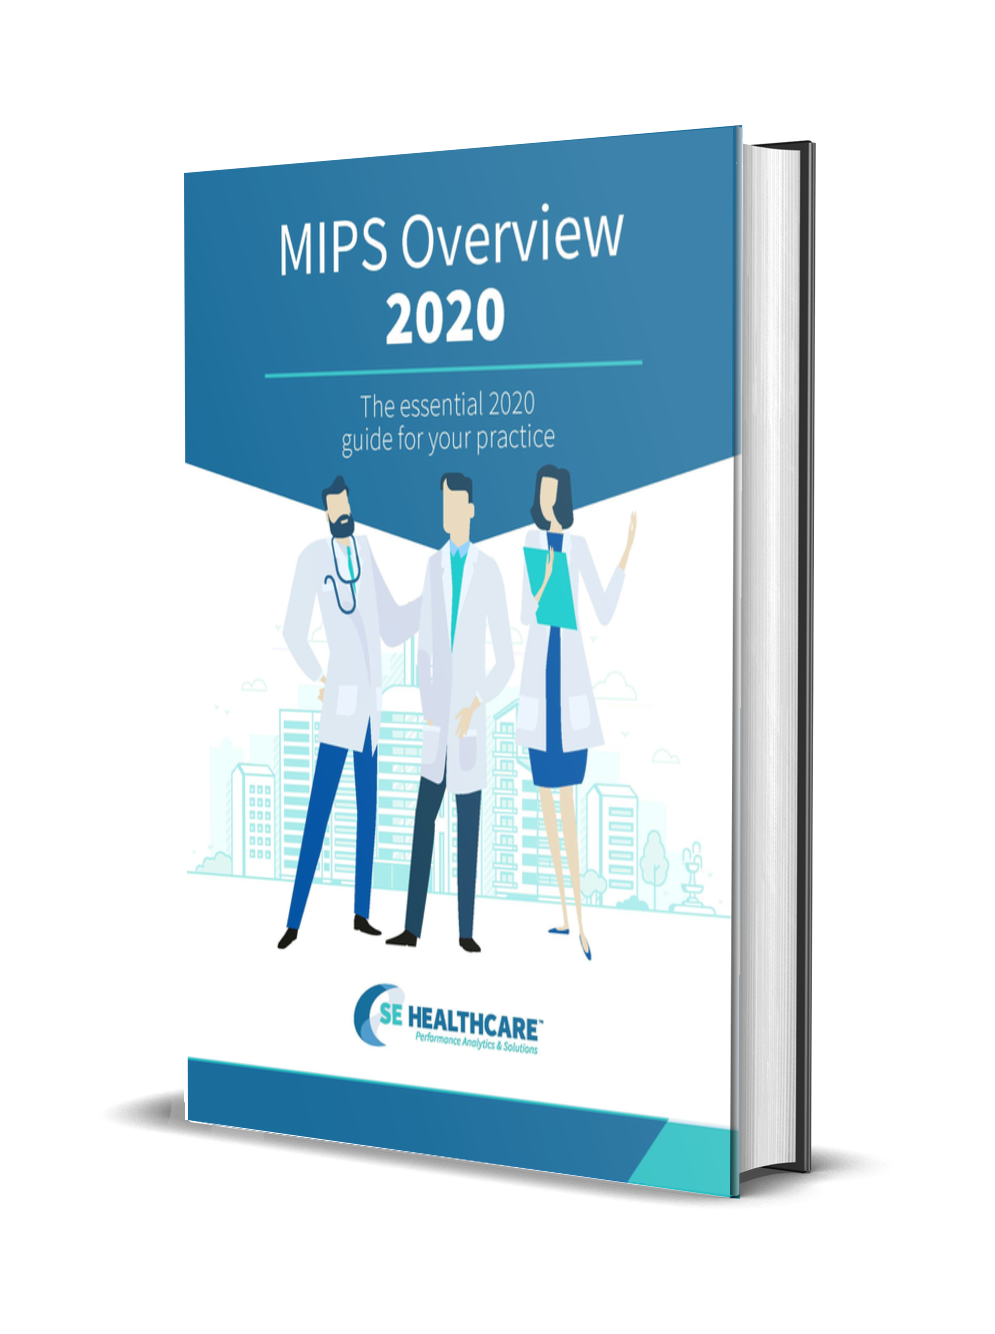 Image of MIPS Overview for 2020: The Essential 2020 Guide for Your Practice transcribed on front of book.